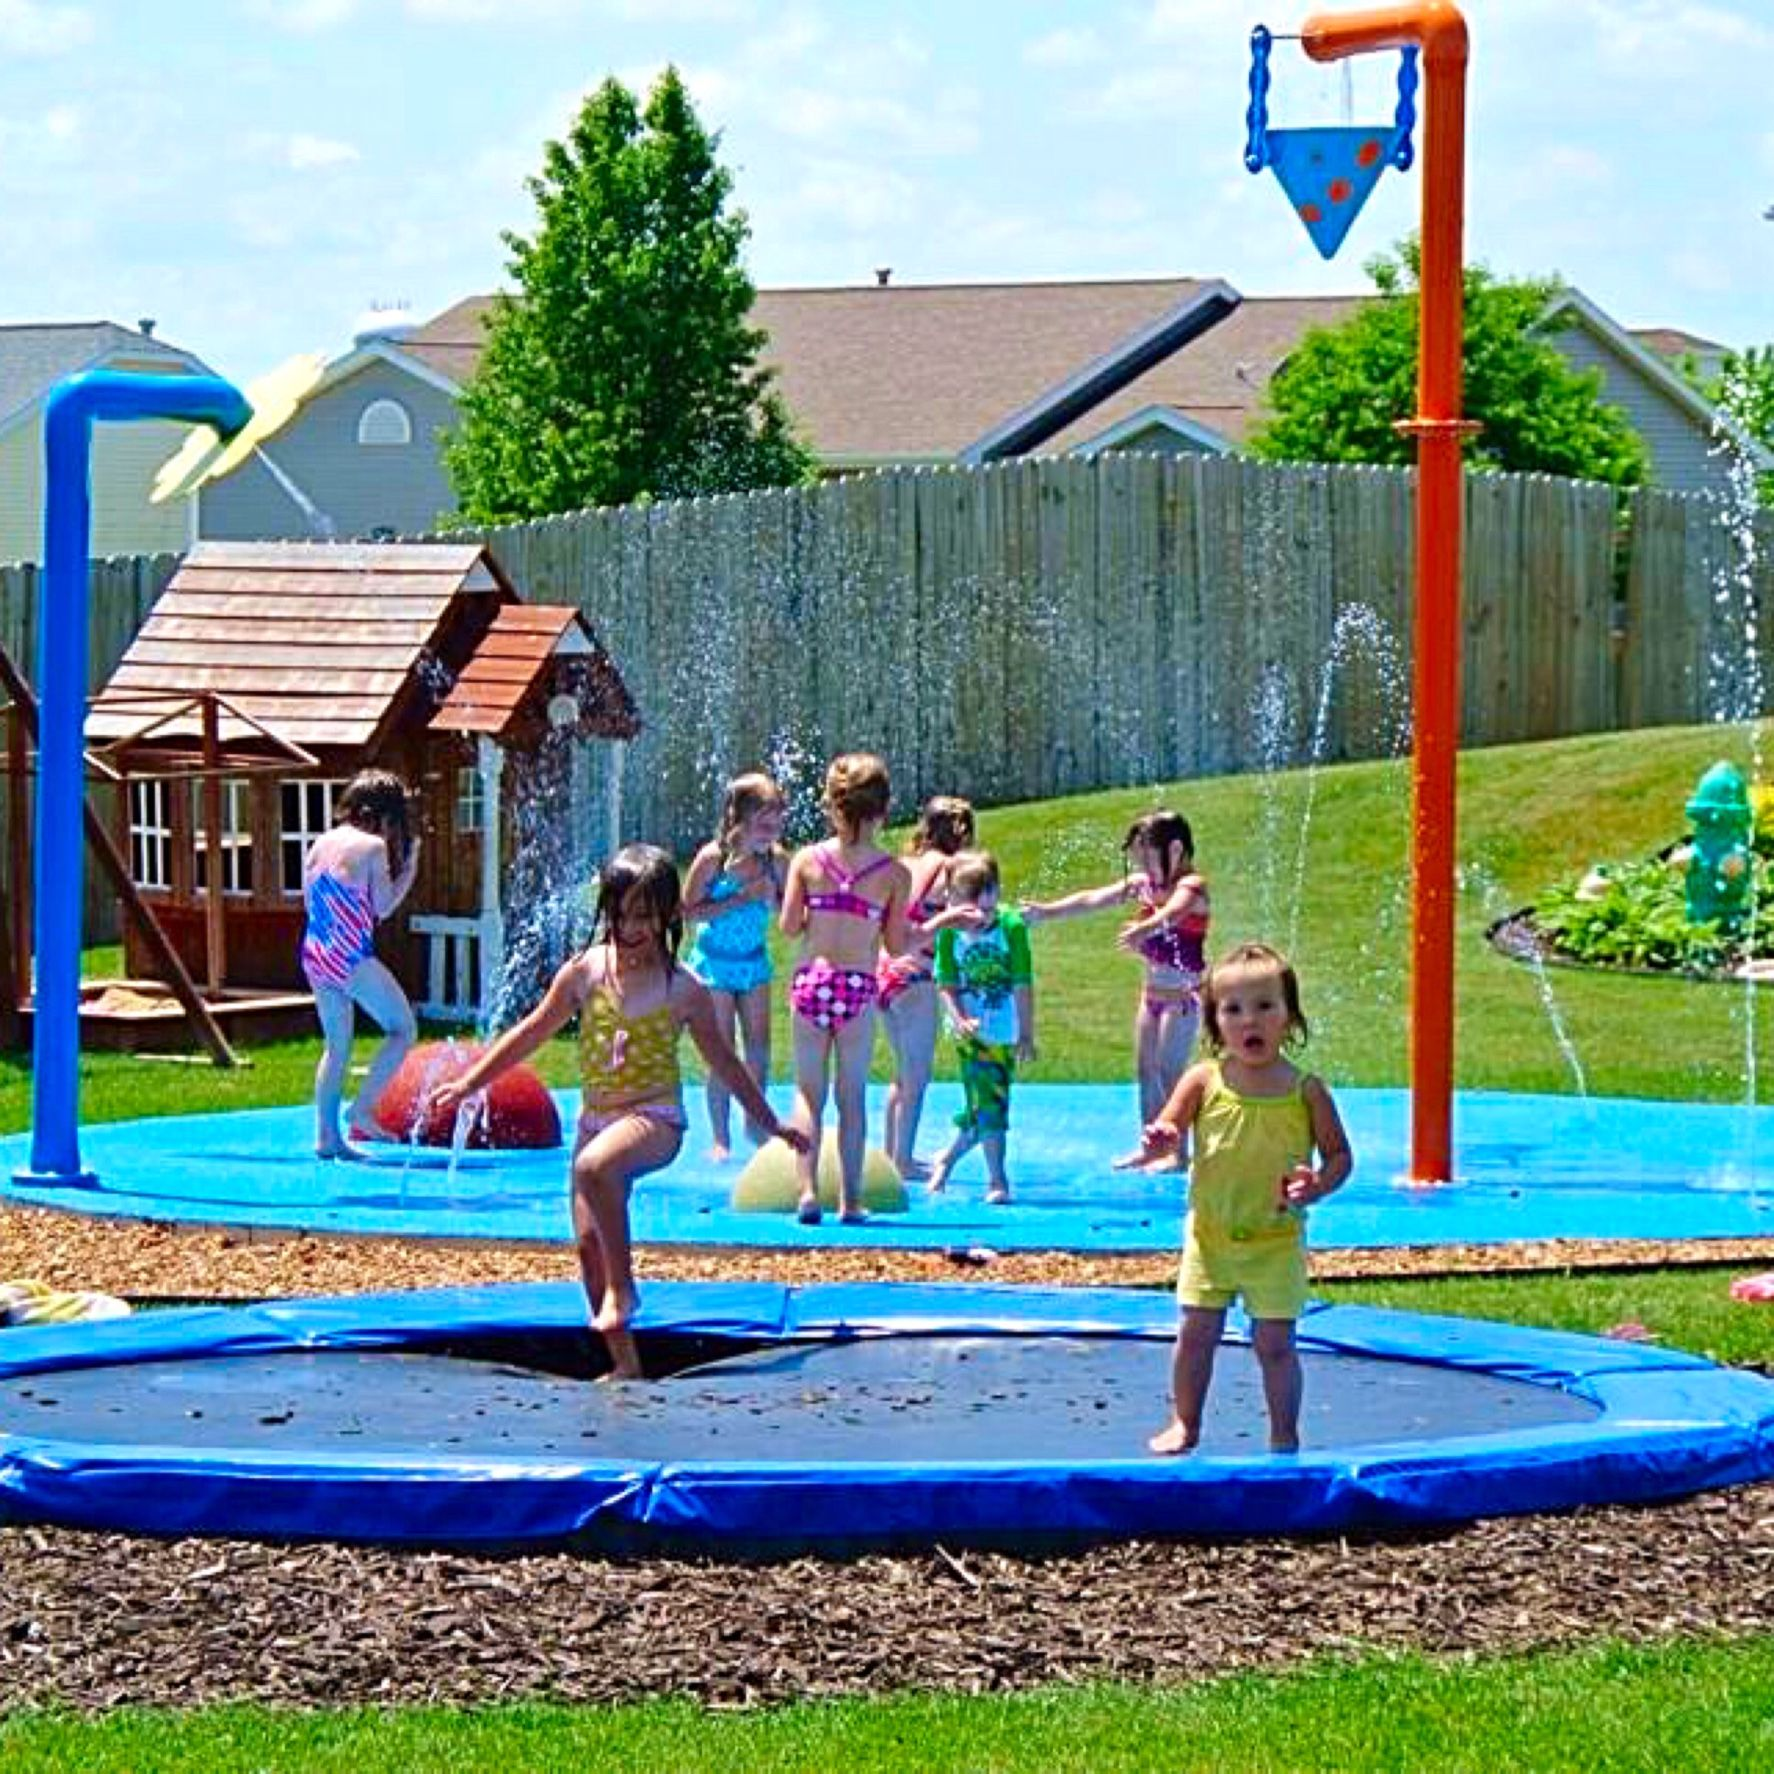 Backyard memories last a lifetime Bring the water park to your